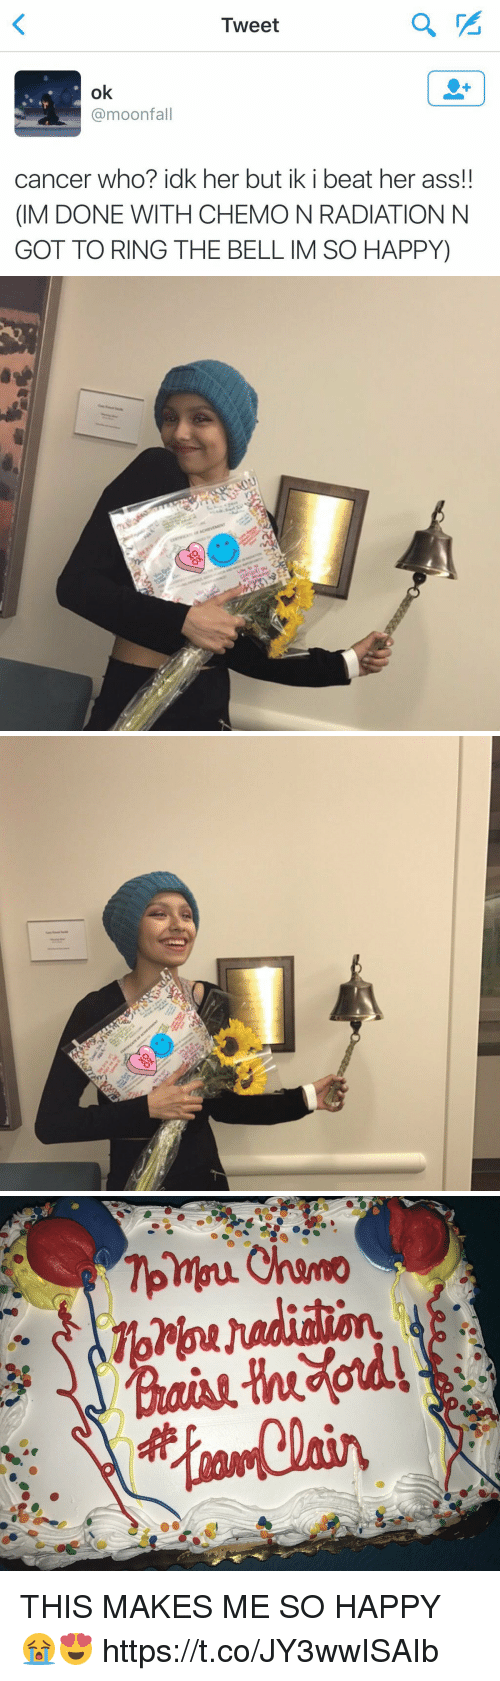 Ass, Cancer, and Happy: Tweet  ok  @moonfall  cancer who?idk her but ik i beat her ass!  (IM DONE WITH CHEMO N RADIATIONN  GOT TO RING THE BELL IM SO HAPPY) THIS MAKES ME SO HAPPY 😭😍 https://t.co/JY3wwISAIb